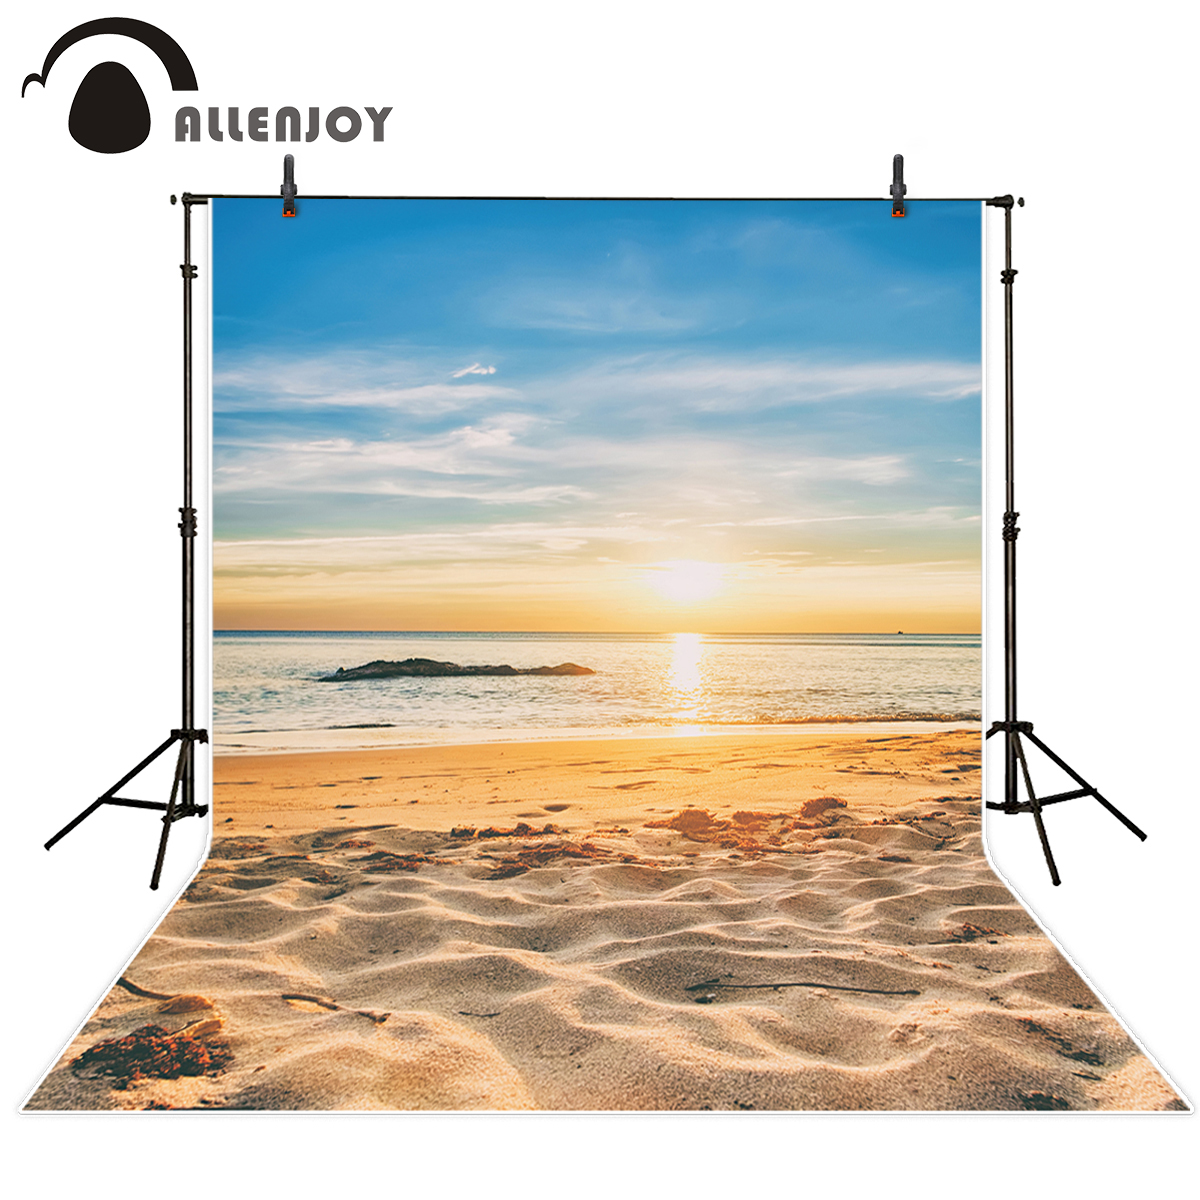 Allenjoy Vinyl material photography Beach sunset blue sky holiday summer ocean photography backdrop photo studio props photocall фитиль zippo в блистере 1196929 page 7 page 6 page 8 page 10